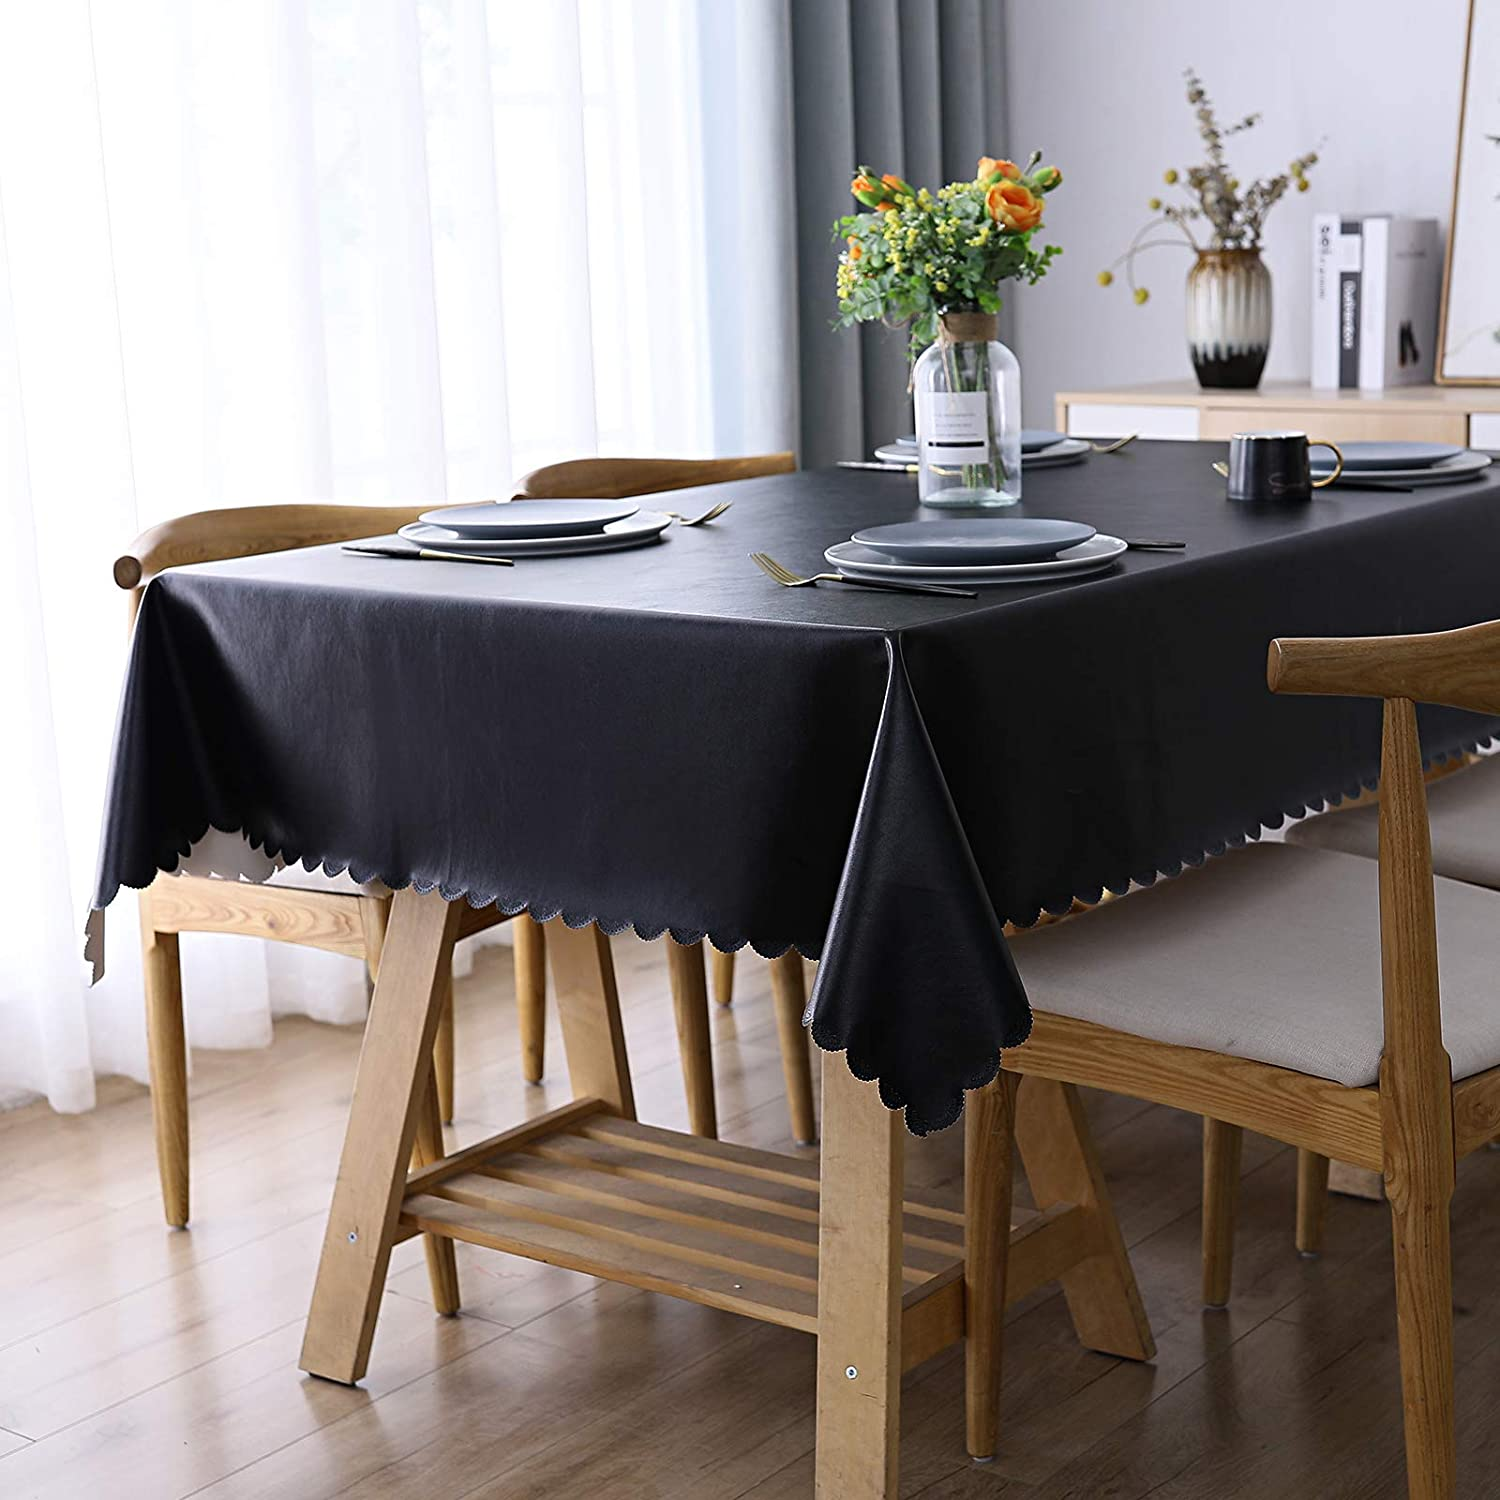 "Smiry Heavy Duty Vinyl Tablecloth, Waterproof and Oil-Proof Solid Color Wipeable Table Cloth, Washable Table Cover for Indoor and Outdoor Use(60"" X 120"",Black)"